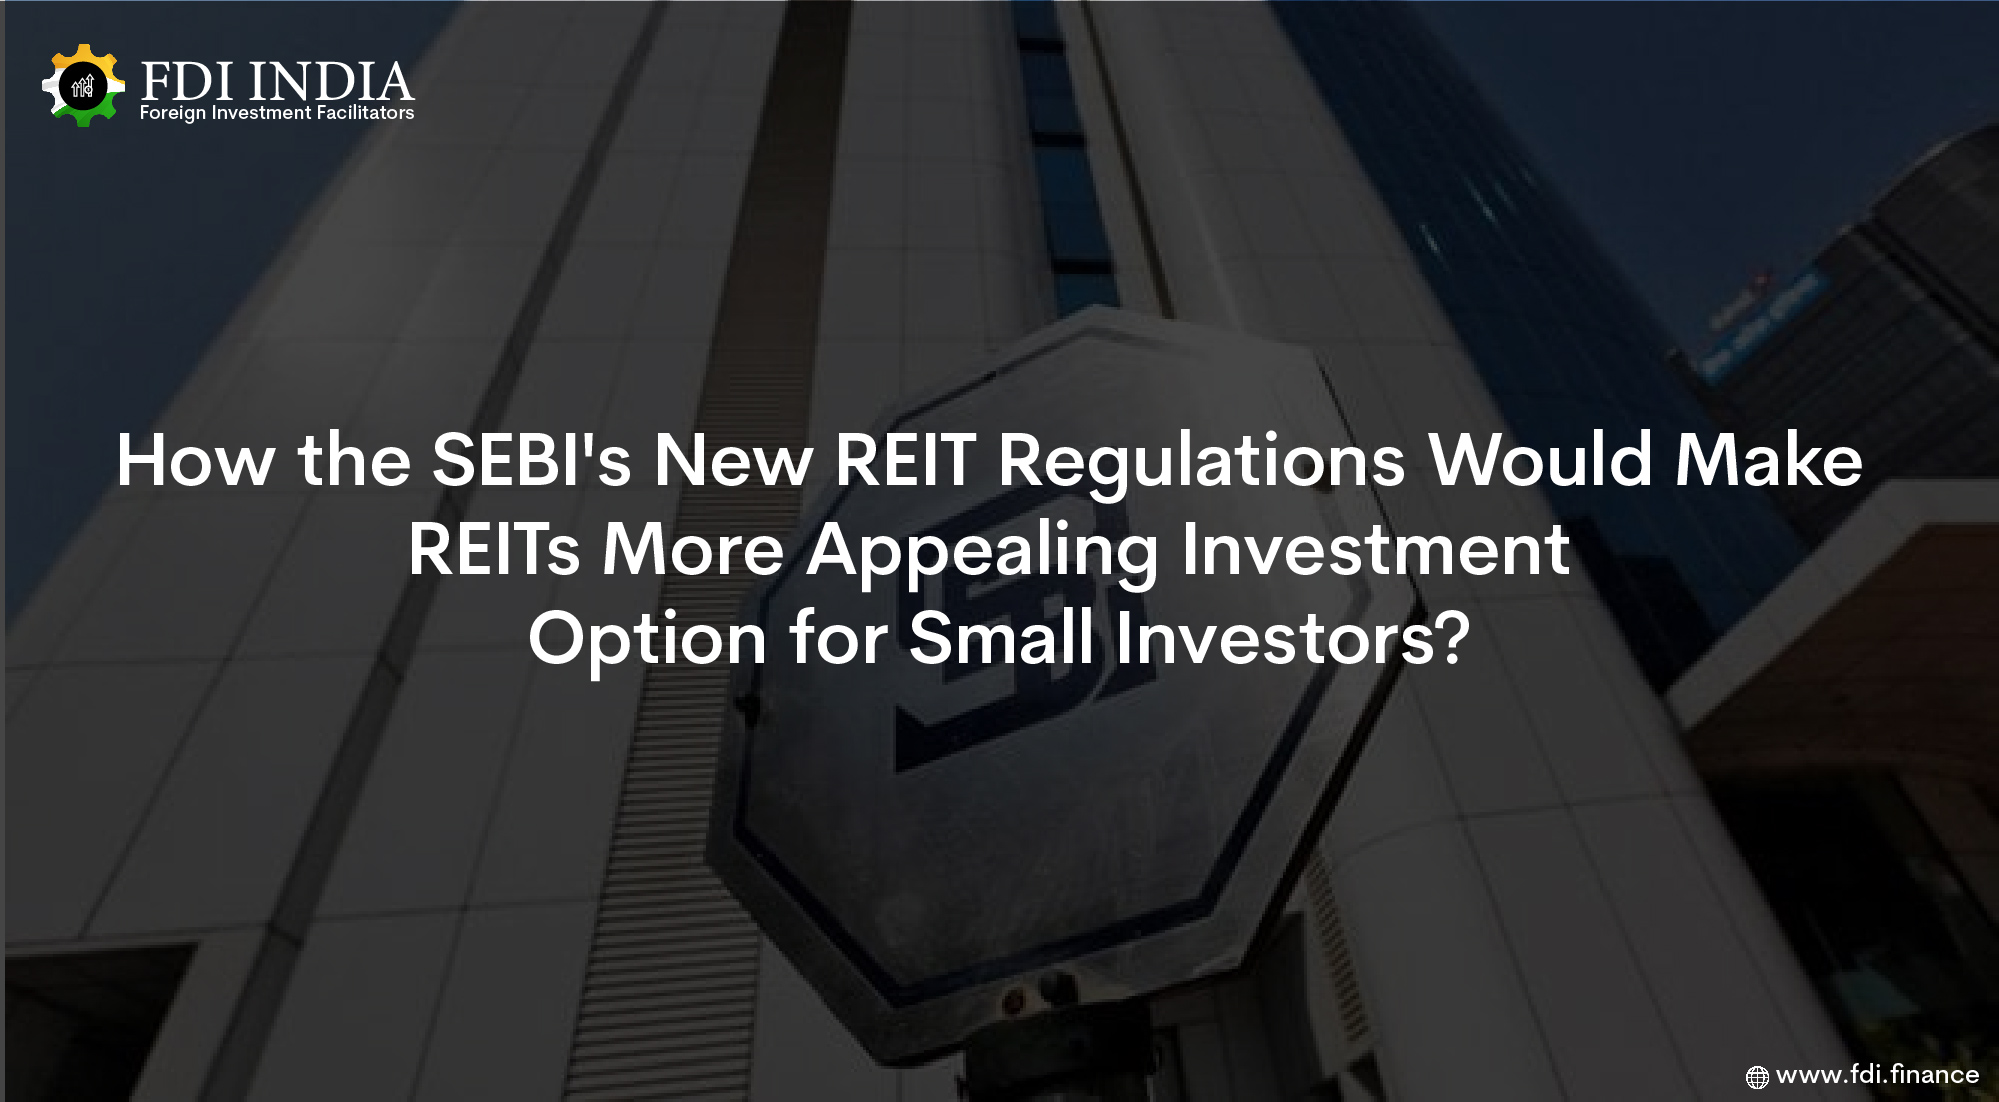 How the SEBI's New REIT Regulations Would Make REITs a More Appealing Investment Option for Small Investors?